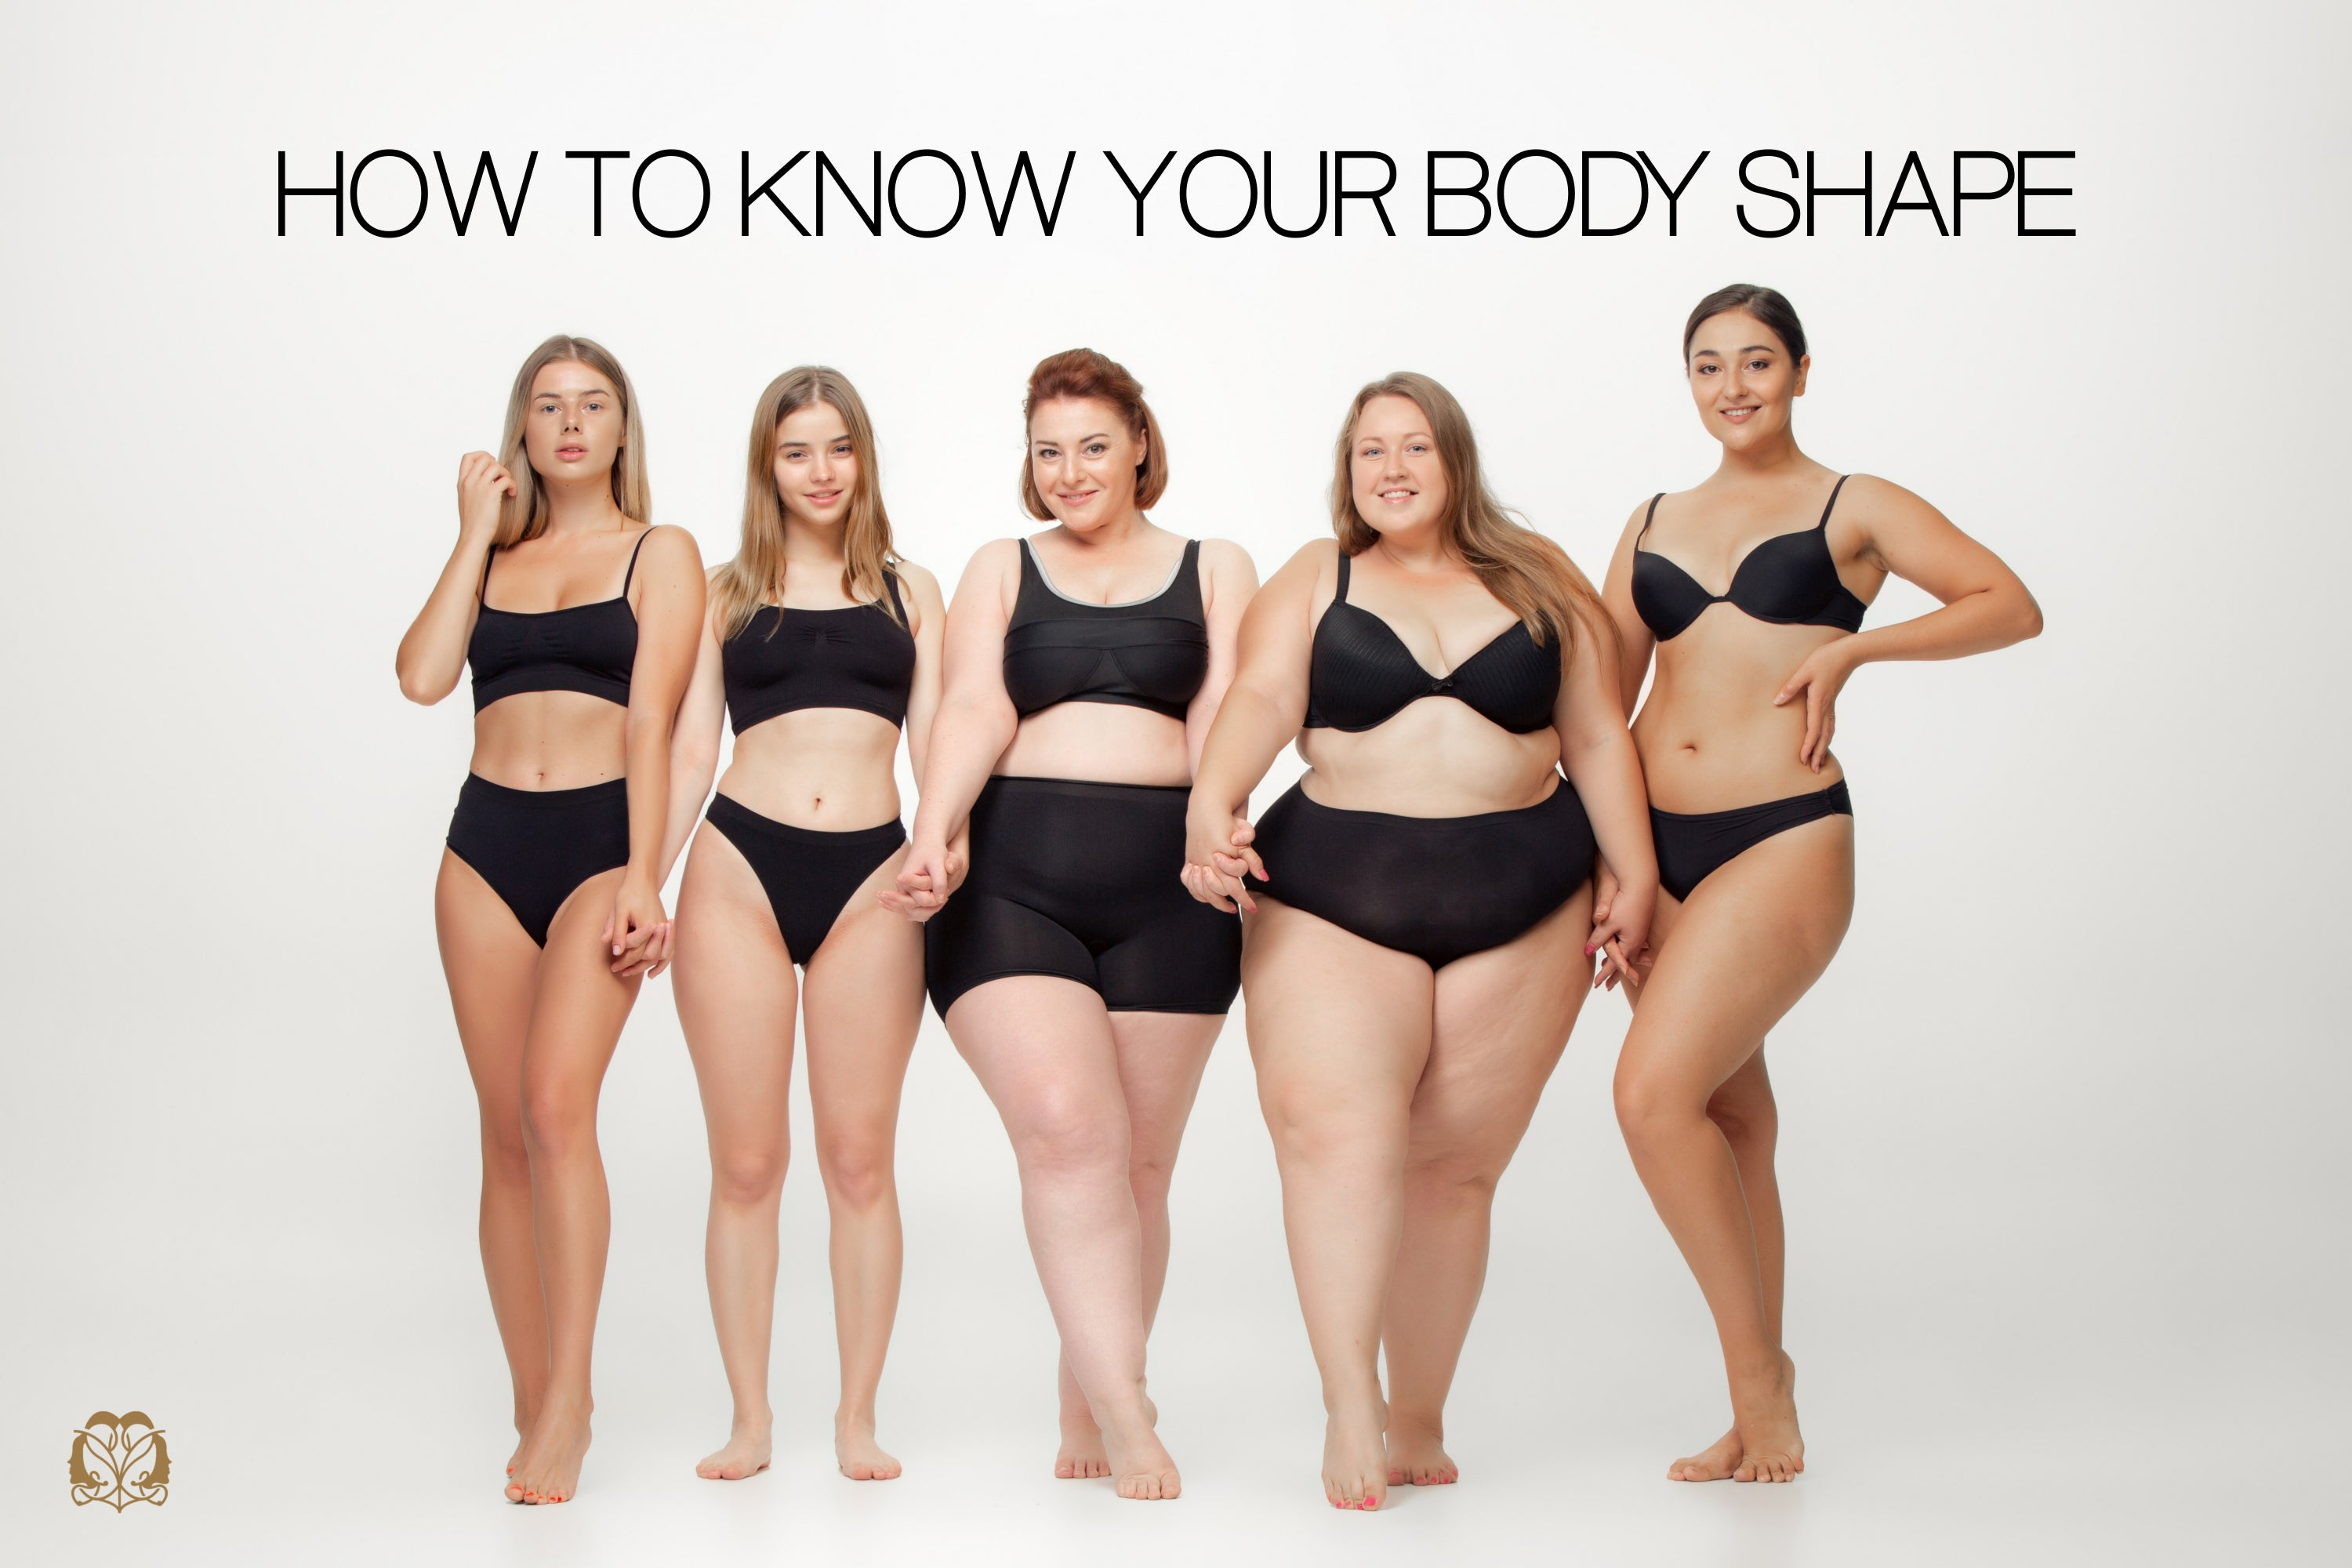 How to know your body shape (finding your body type)